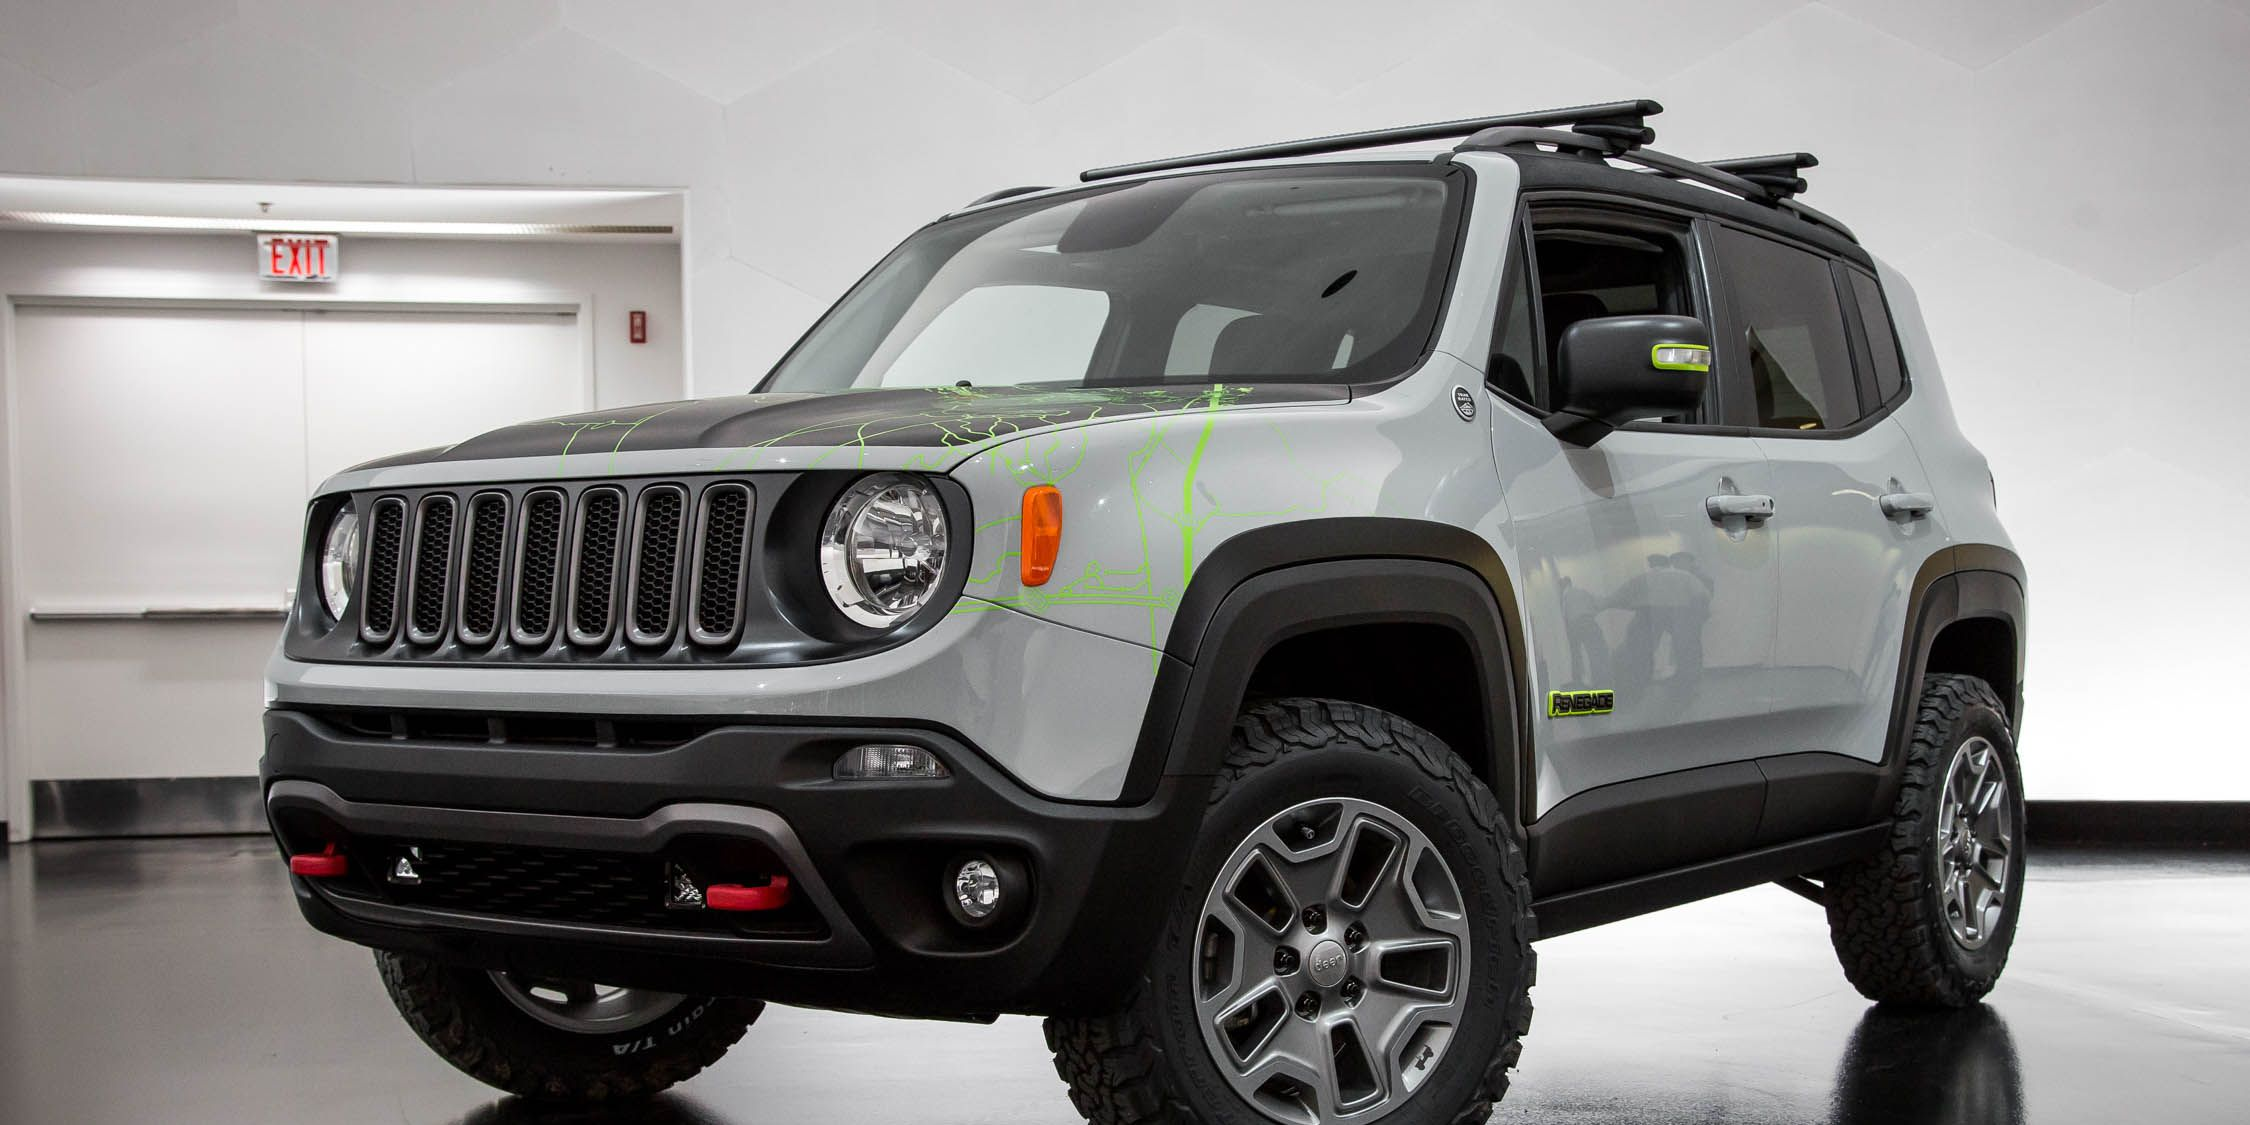 Every Crazy Jeep Concept Created for the 50th Easter Jeep Safari